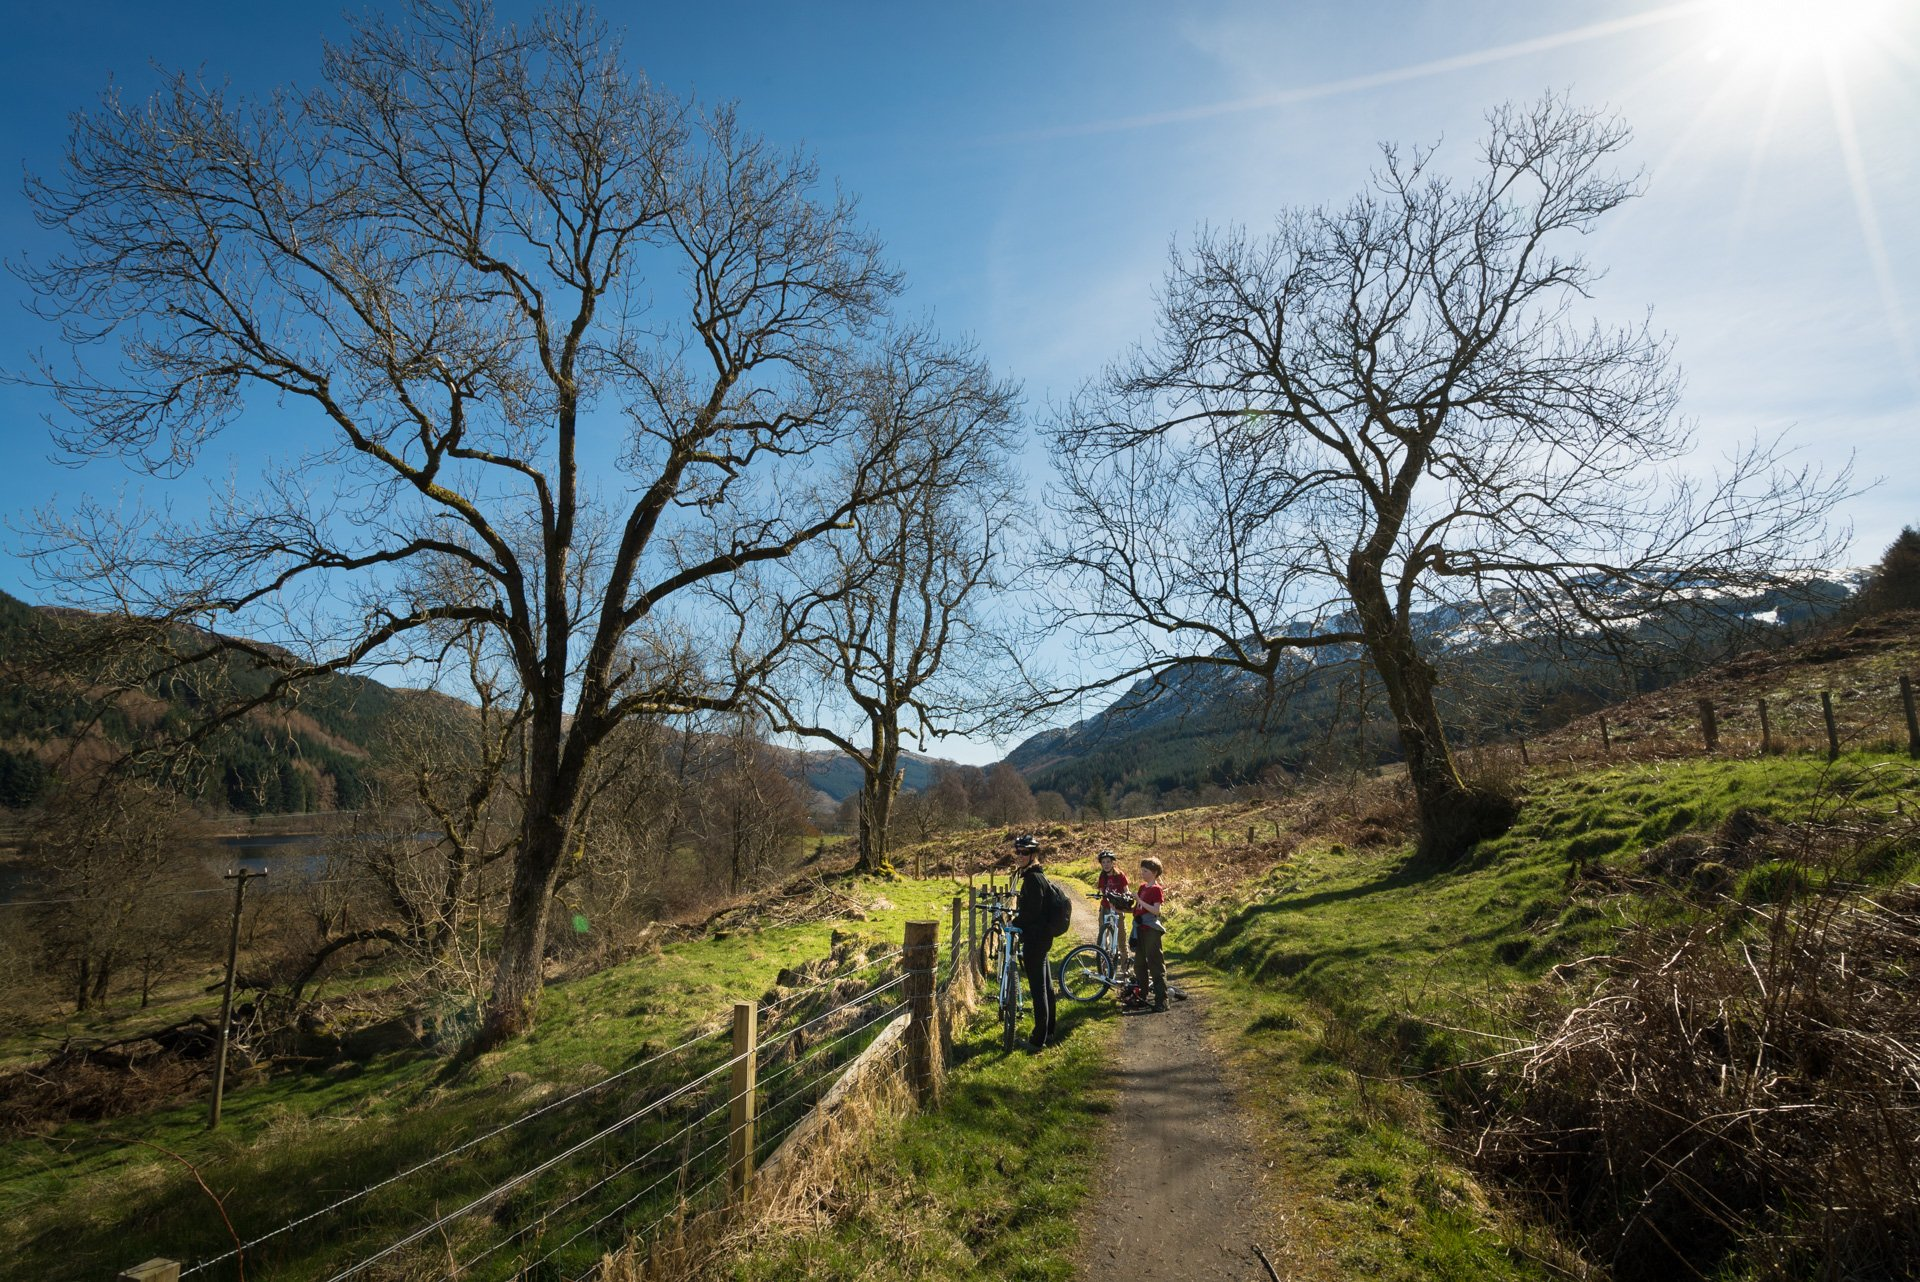 National Cycle Route 7 goes through Loch Lomand and the Trossachs National Park in Scotland